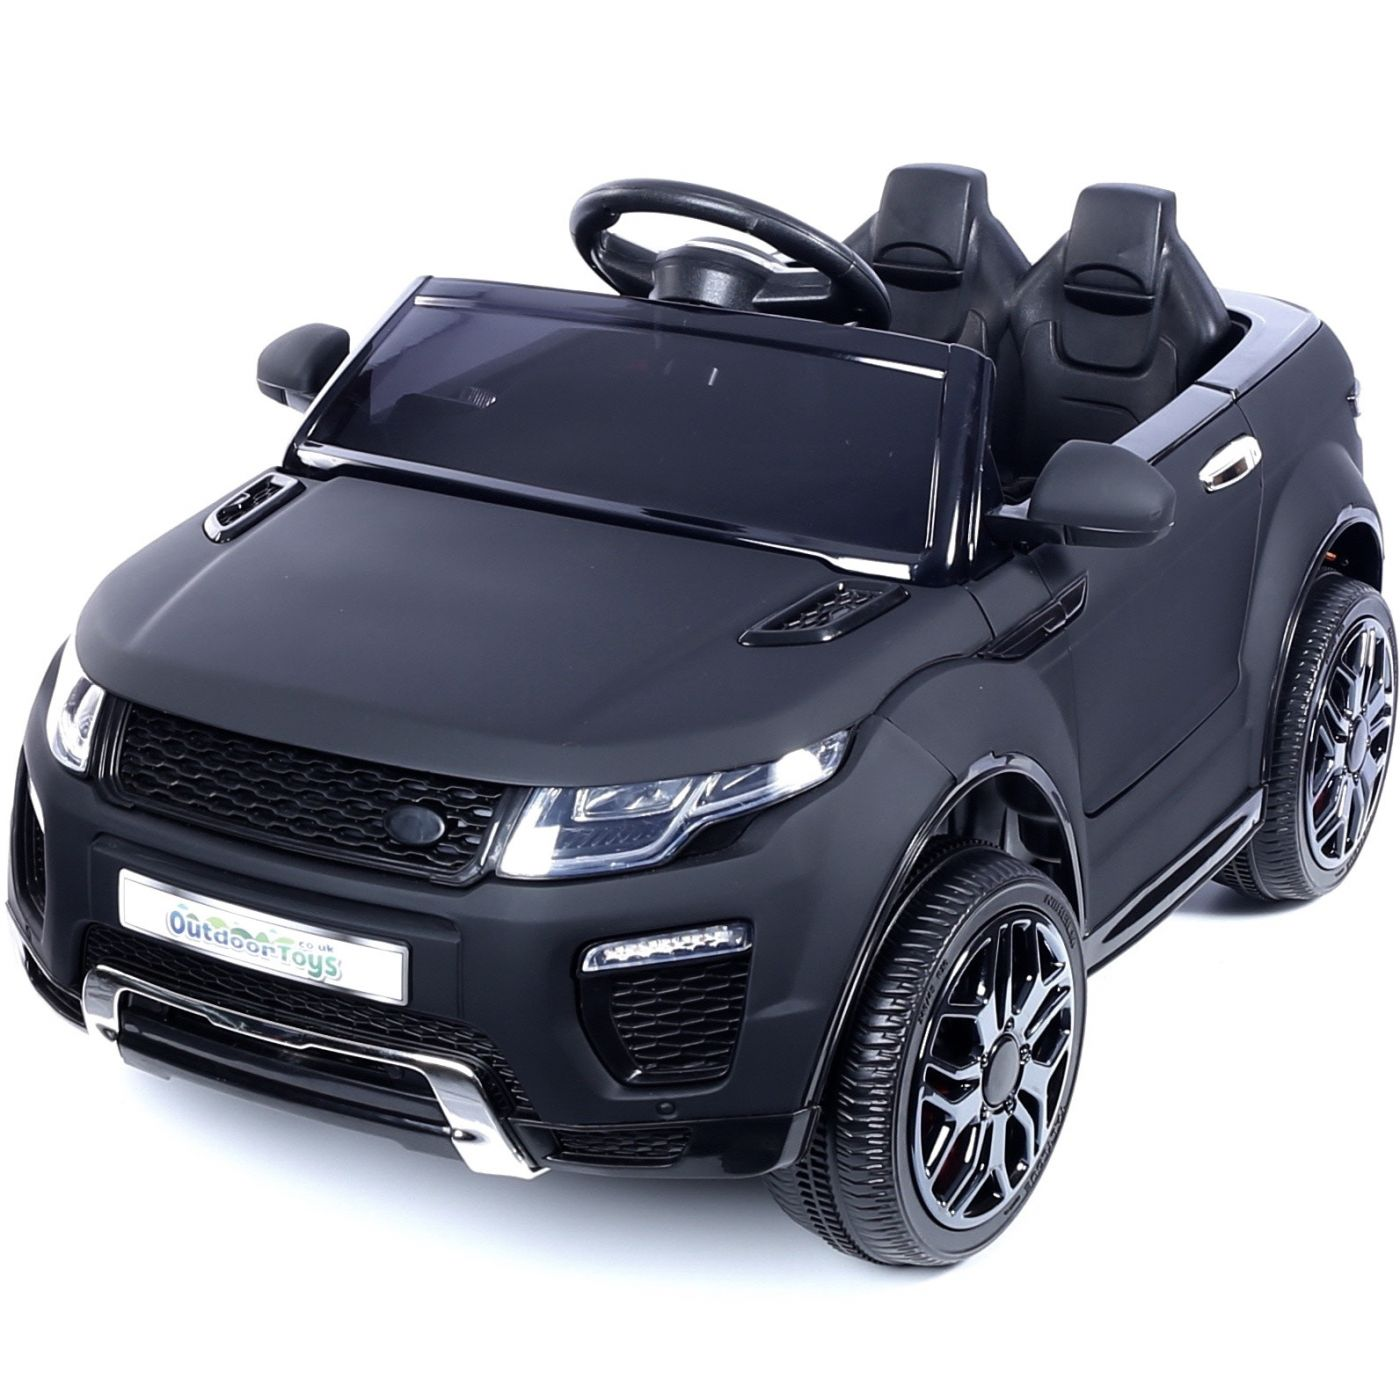 New Licensed Range Rover Evoque Electric 12v Ride On Car With Remote